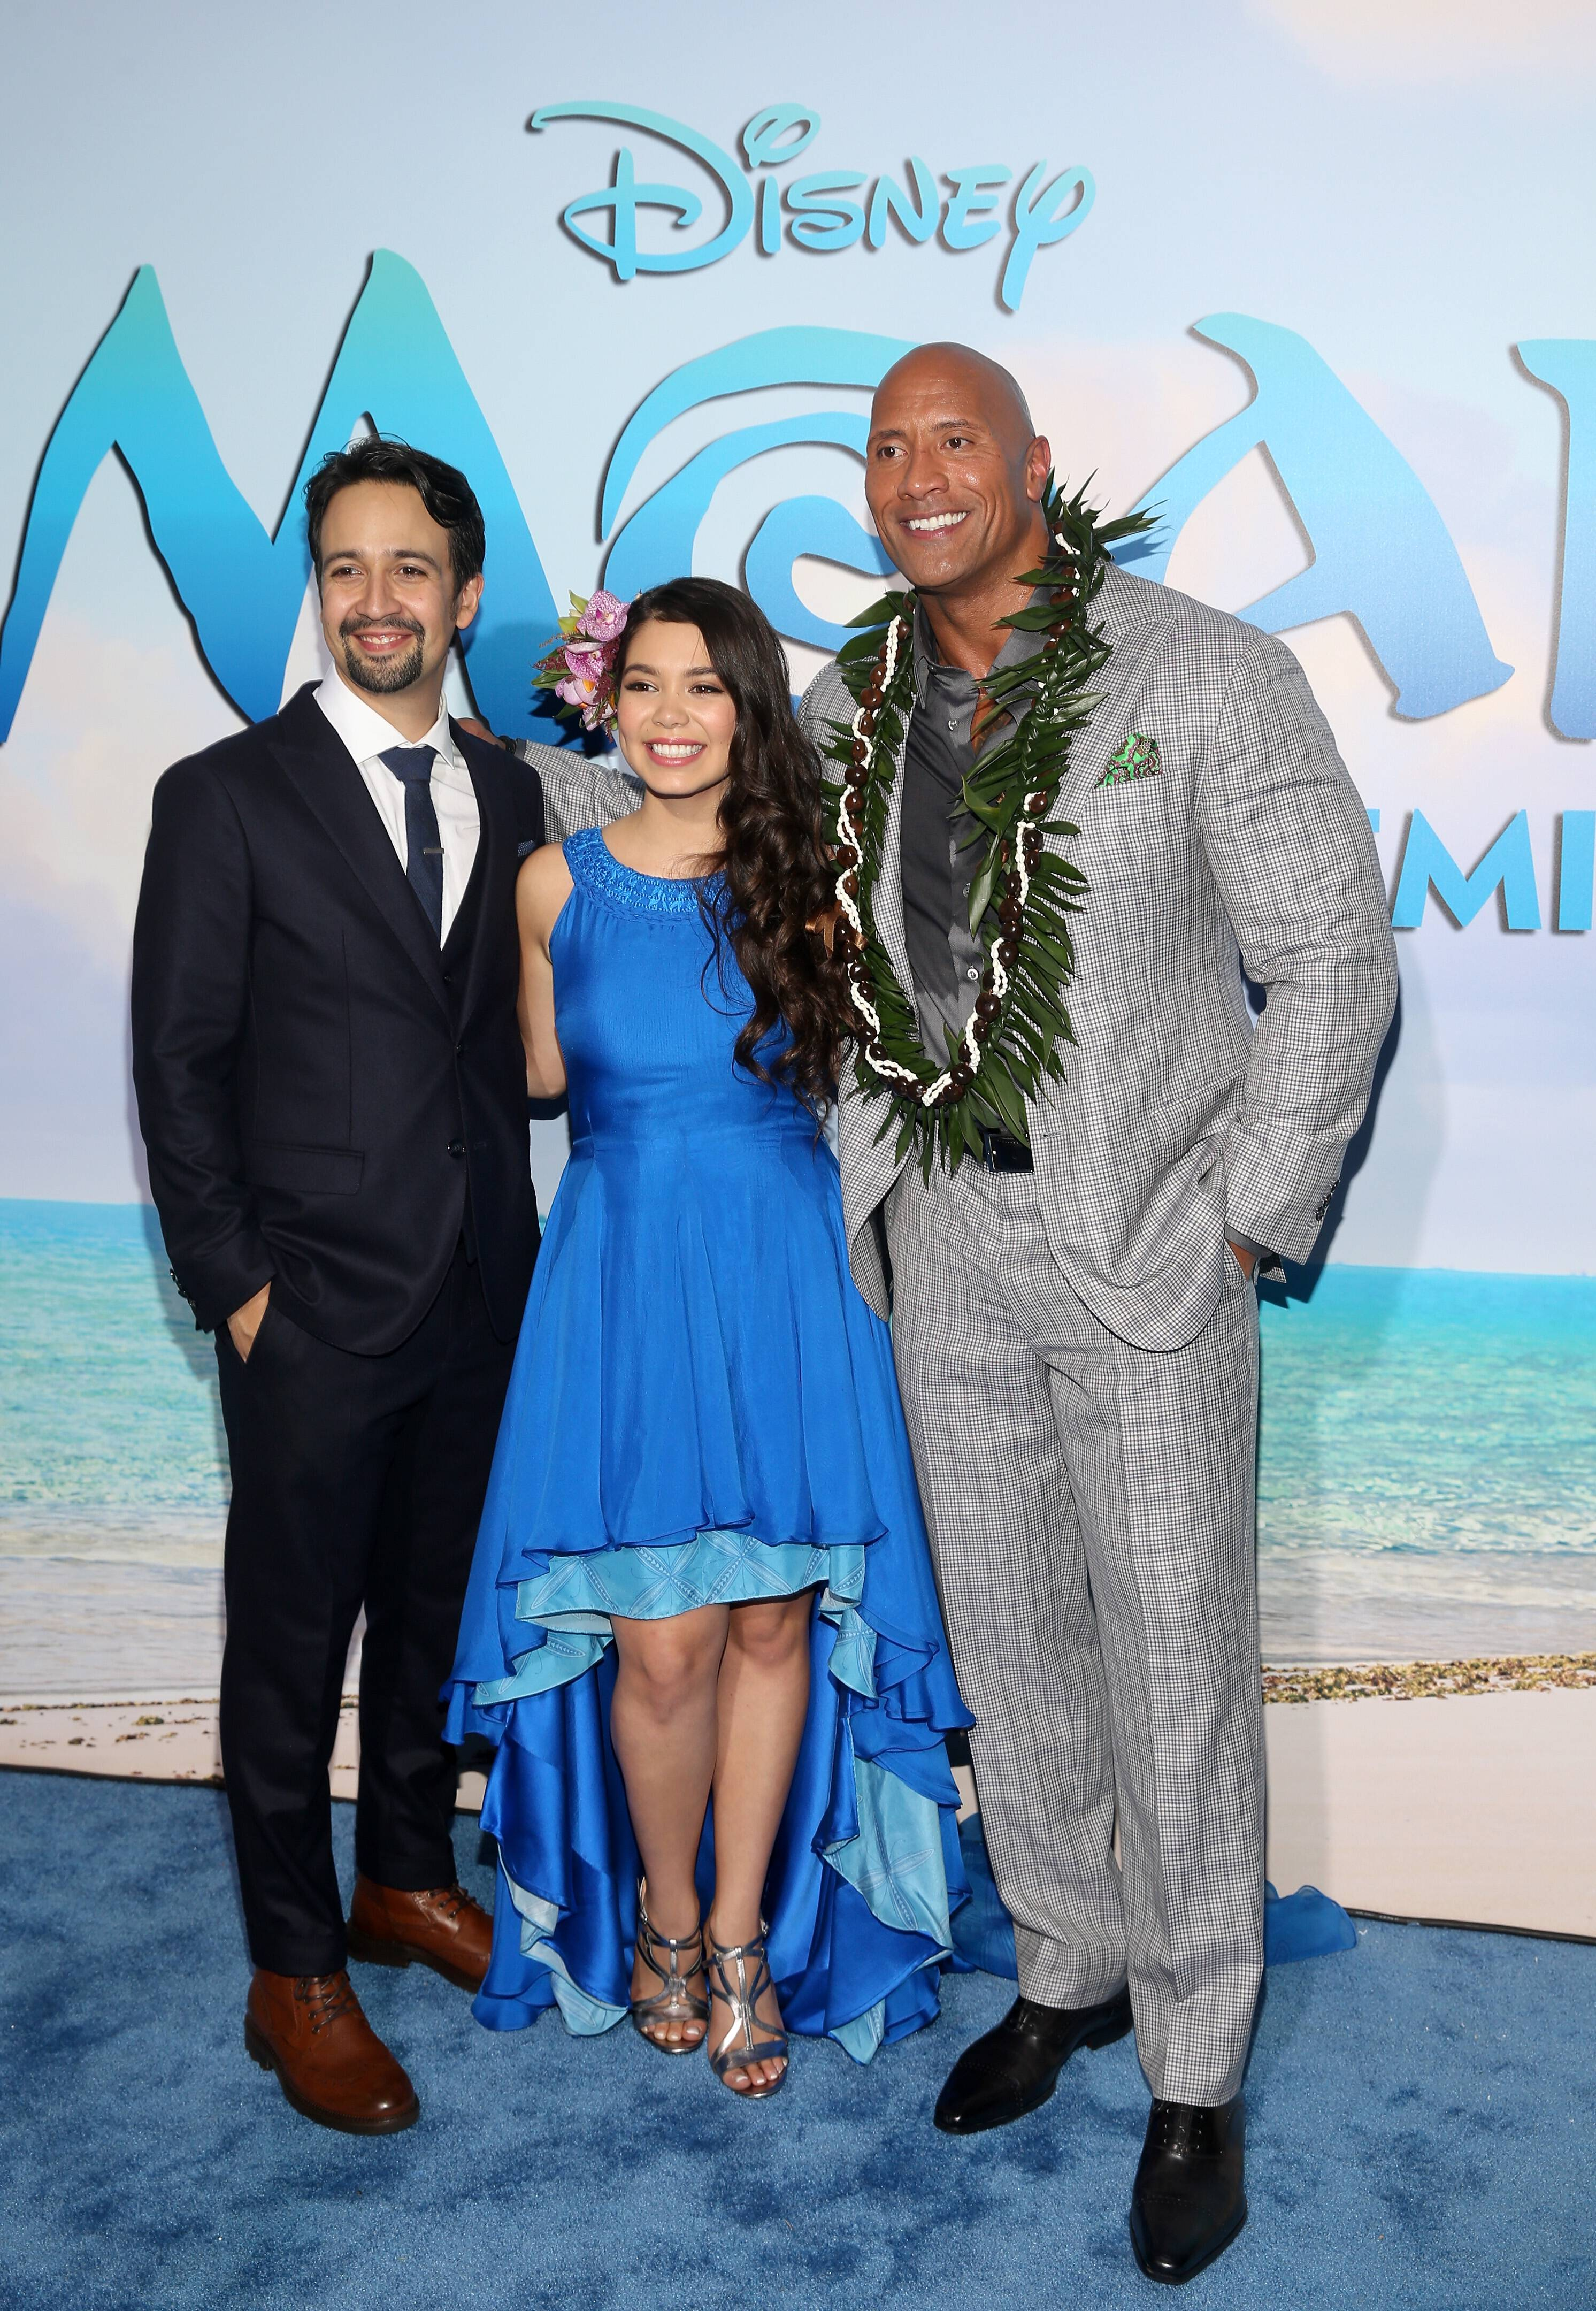 "HOLLYWOOD, CA - NOVEMBER 14: (L-R) Songwriter Lin-Manuel Miranda, actors Auli'i Cravalho and Dwayne Johnson attend The World Premiere of Disney's ""MOANA"" at the El Capitan Theatre on Monday, November 14, 2016 in Hollywood, CA. (Photo by Jesse Grant/Getty Images for Disney) *** Local Caption *** Auli'i Cravalho; Dwayne Johnson; Lin-Manuel Miranda"